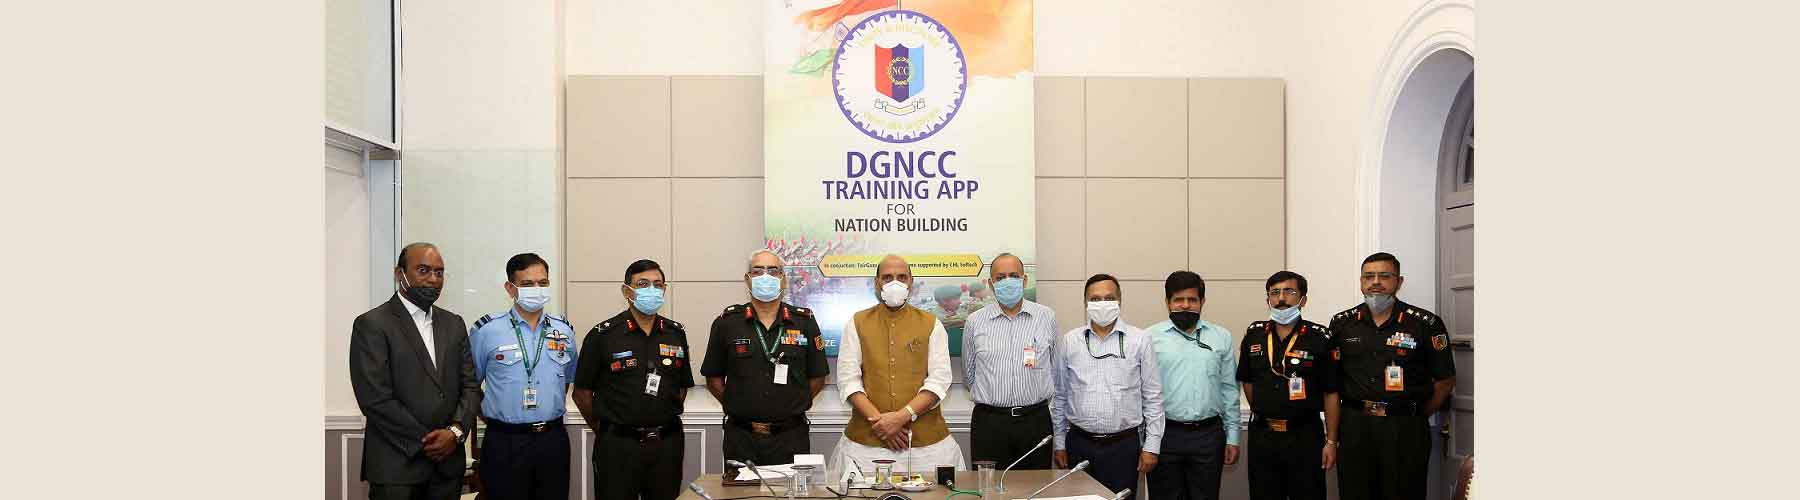 Raksha Mantri Shri Rajnath Singh launched the Directorate General National Cadet Corps (DGNCC) Mobile Training App for online training of NCC cadets, in New Delhi on Thursday, August 27, 2020